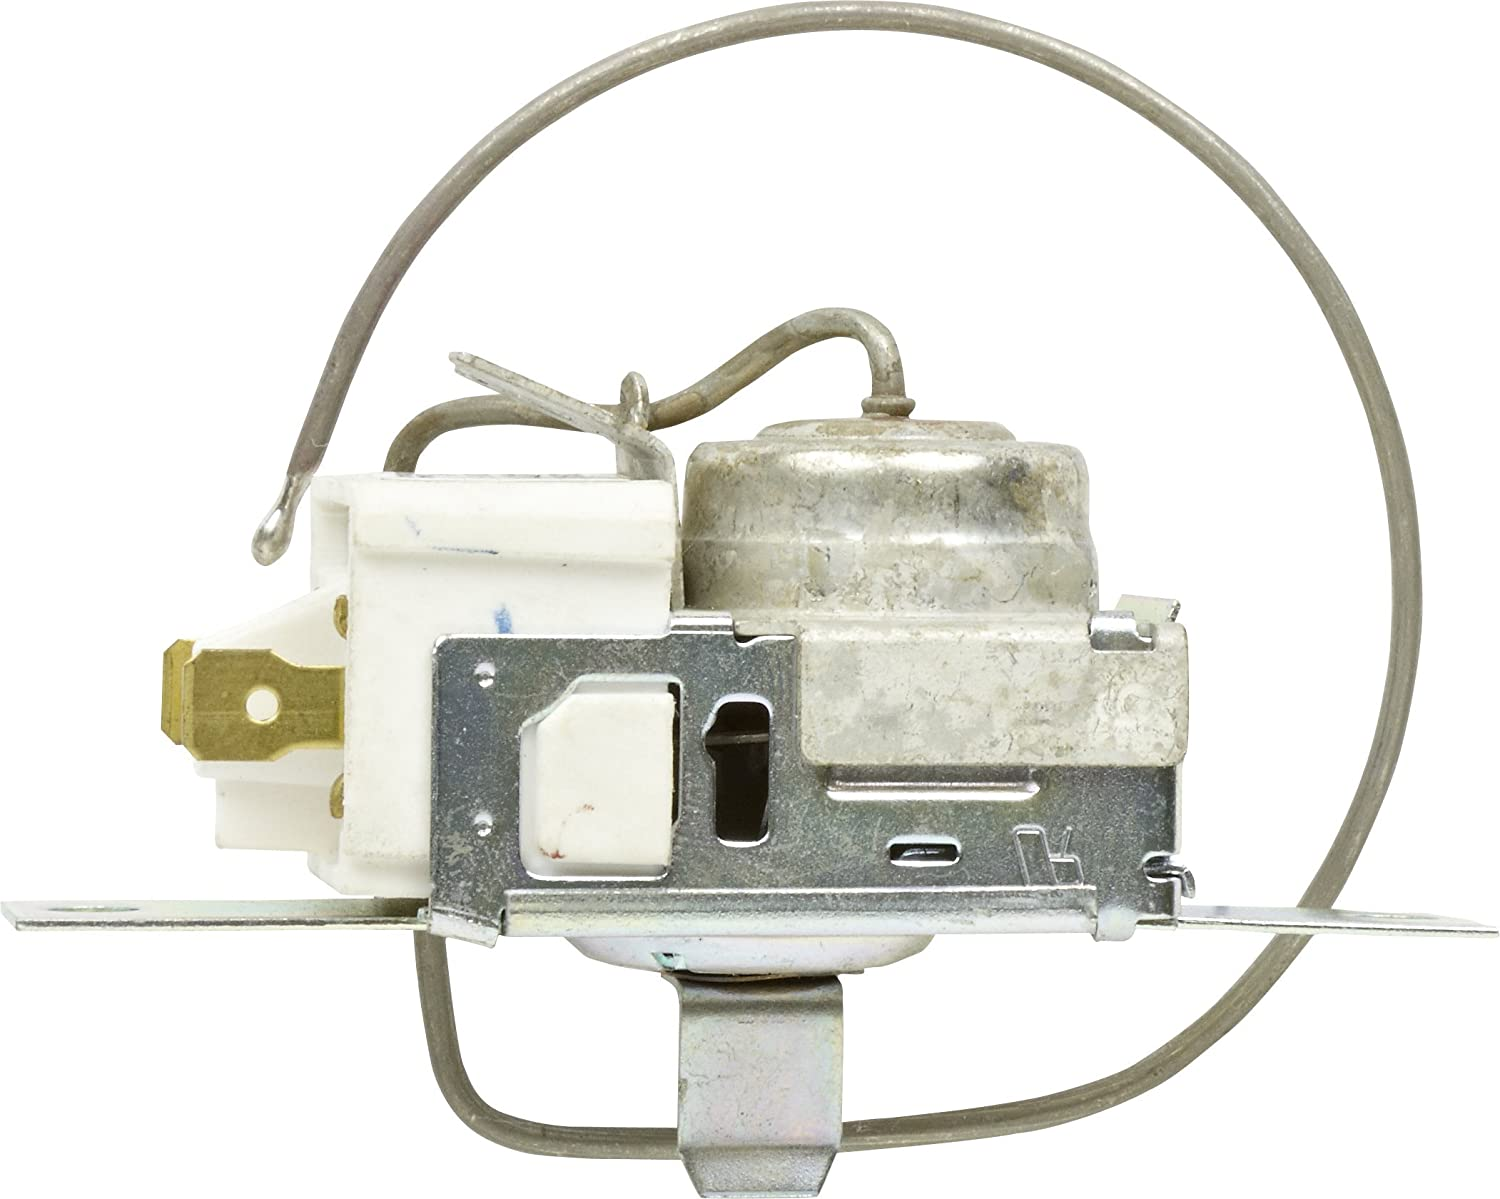 Whirlpool C8946703 Temperature Control Home Improvement Parts Diagram List For Model Wed7600xw0 Whirlpoolparts Dryer